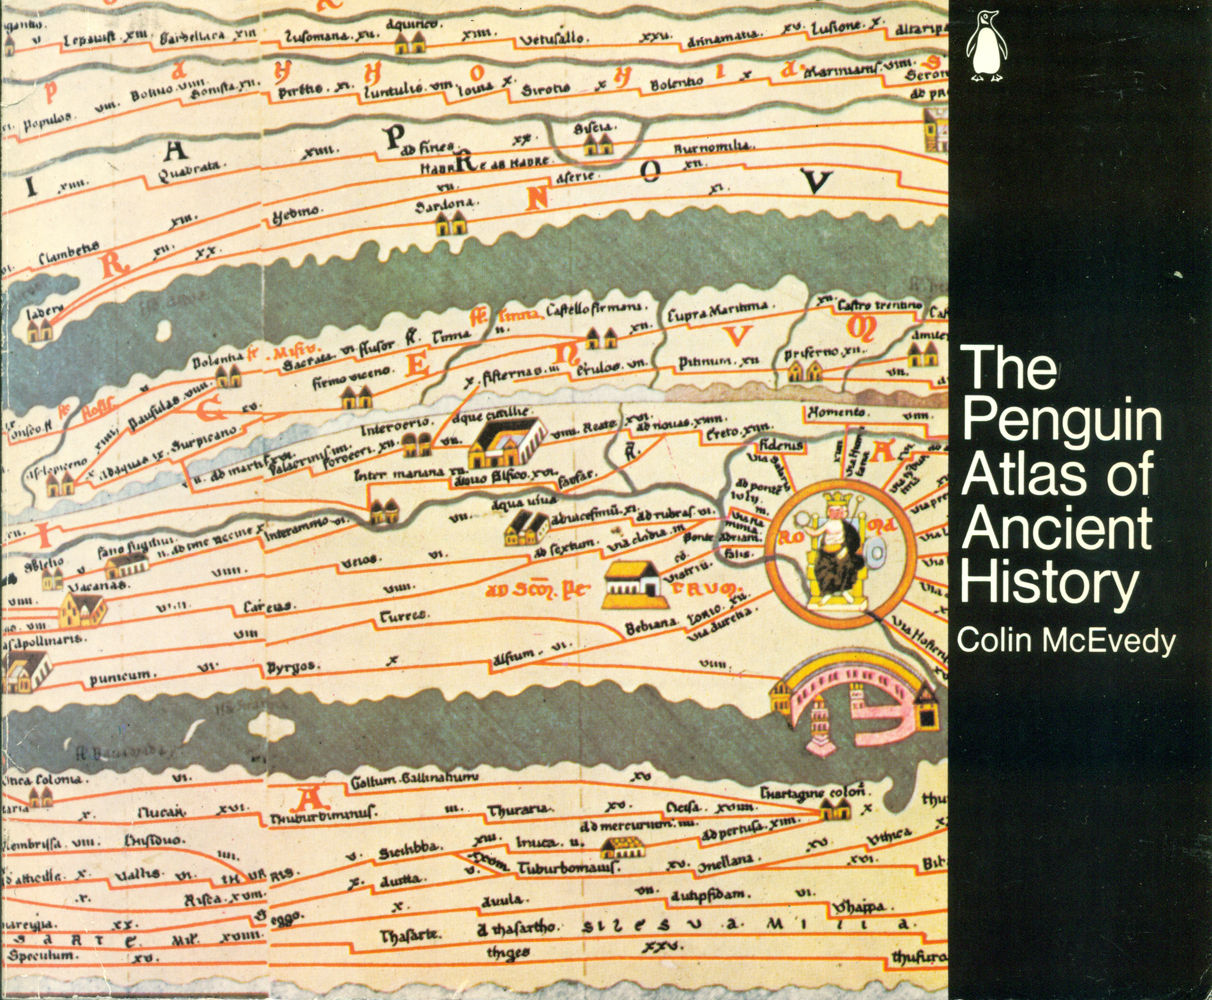 Penguin Book Cover History : The penguin atlas of ancient history by colin mcevedy